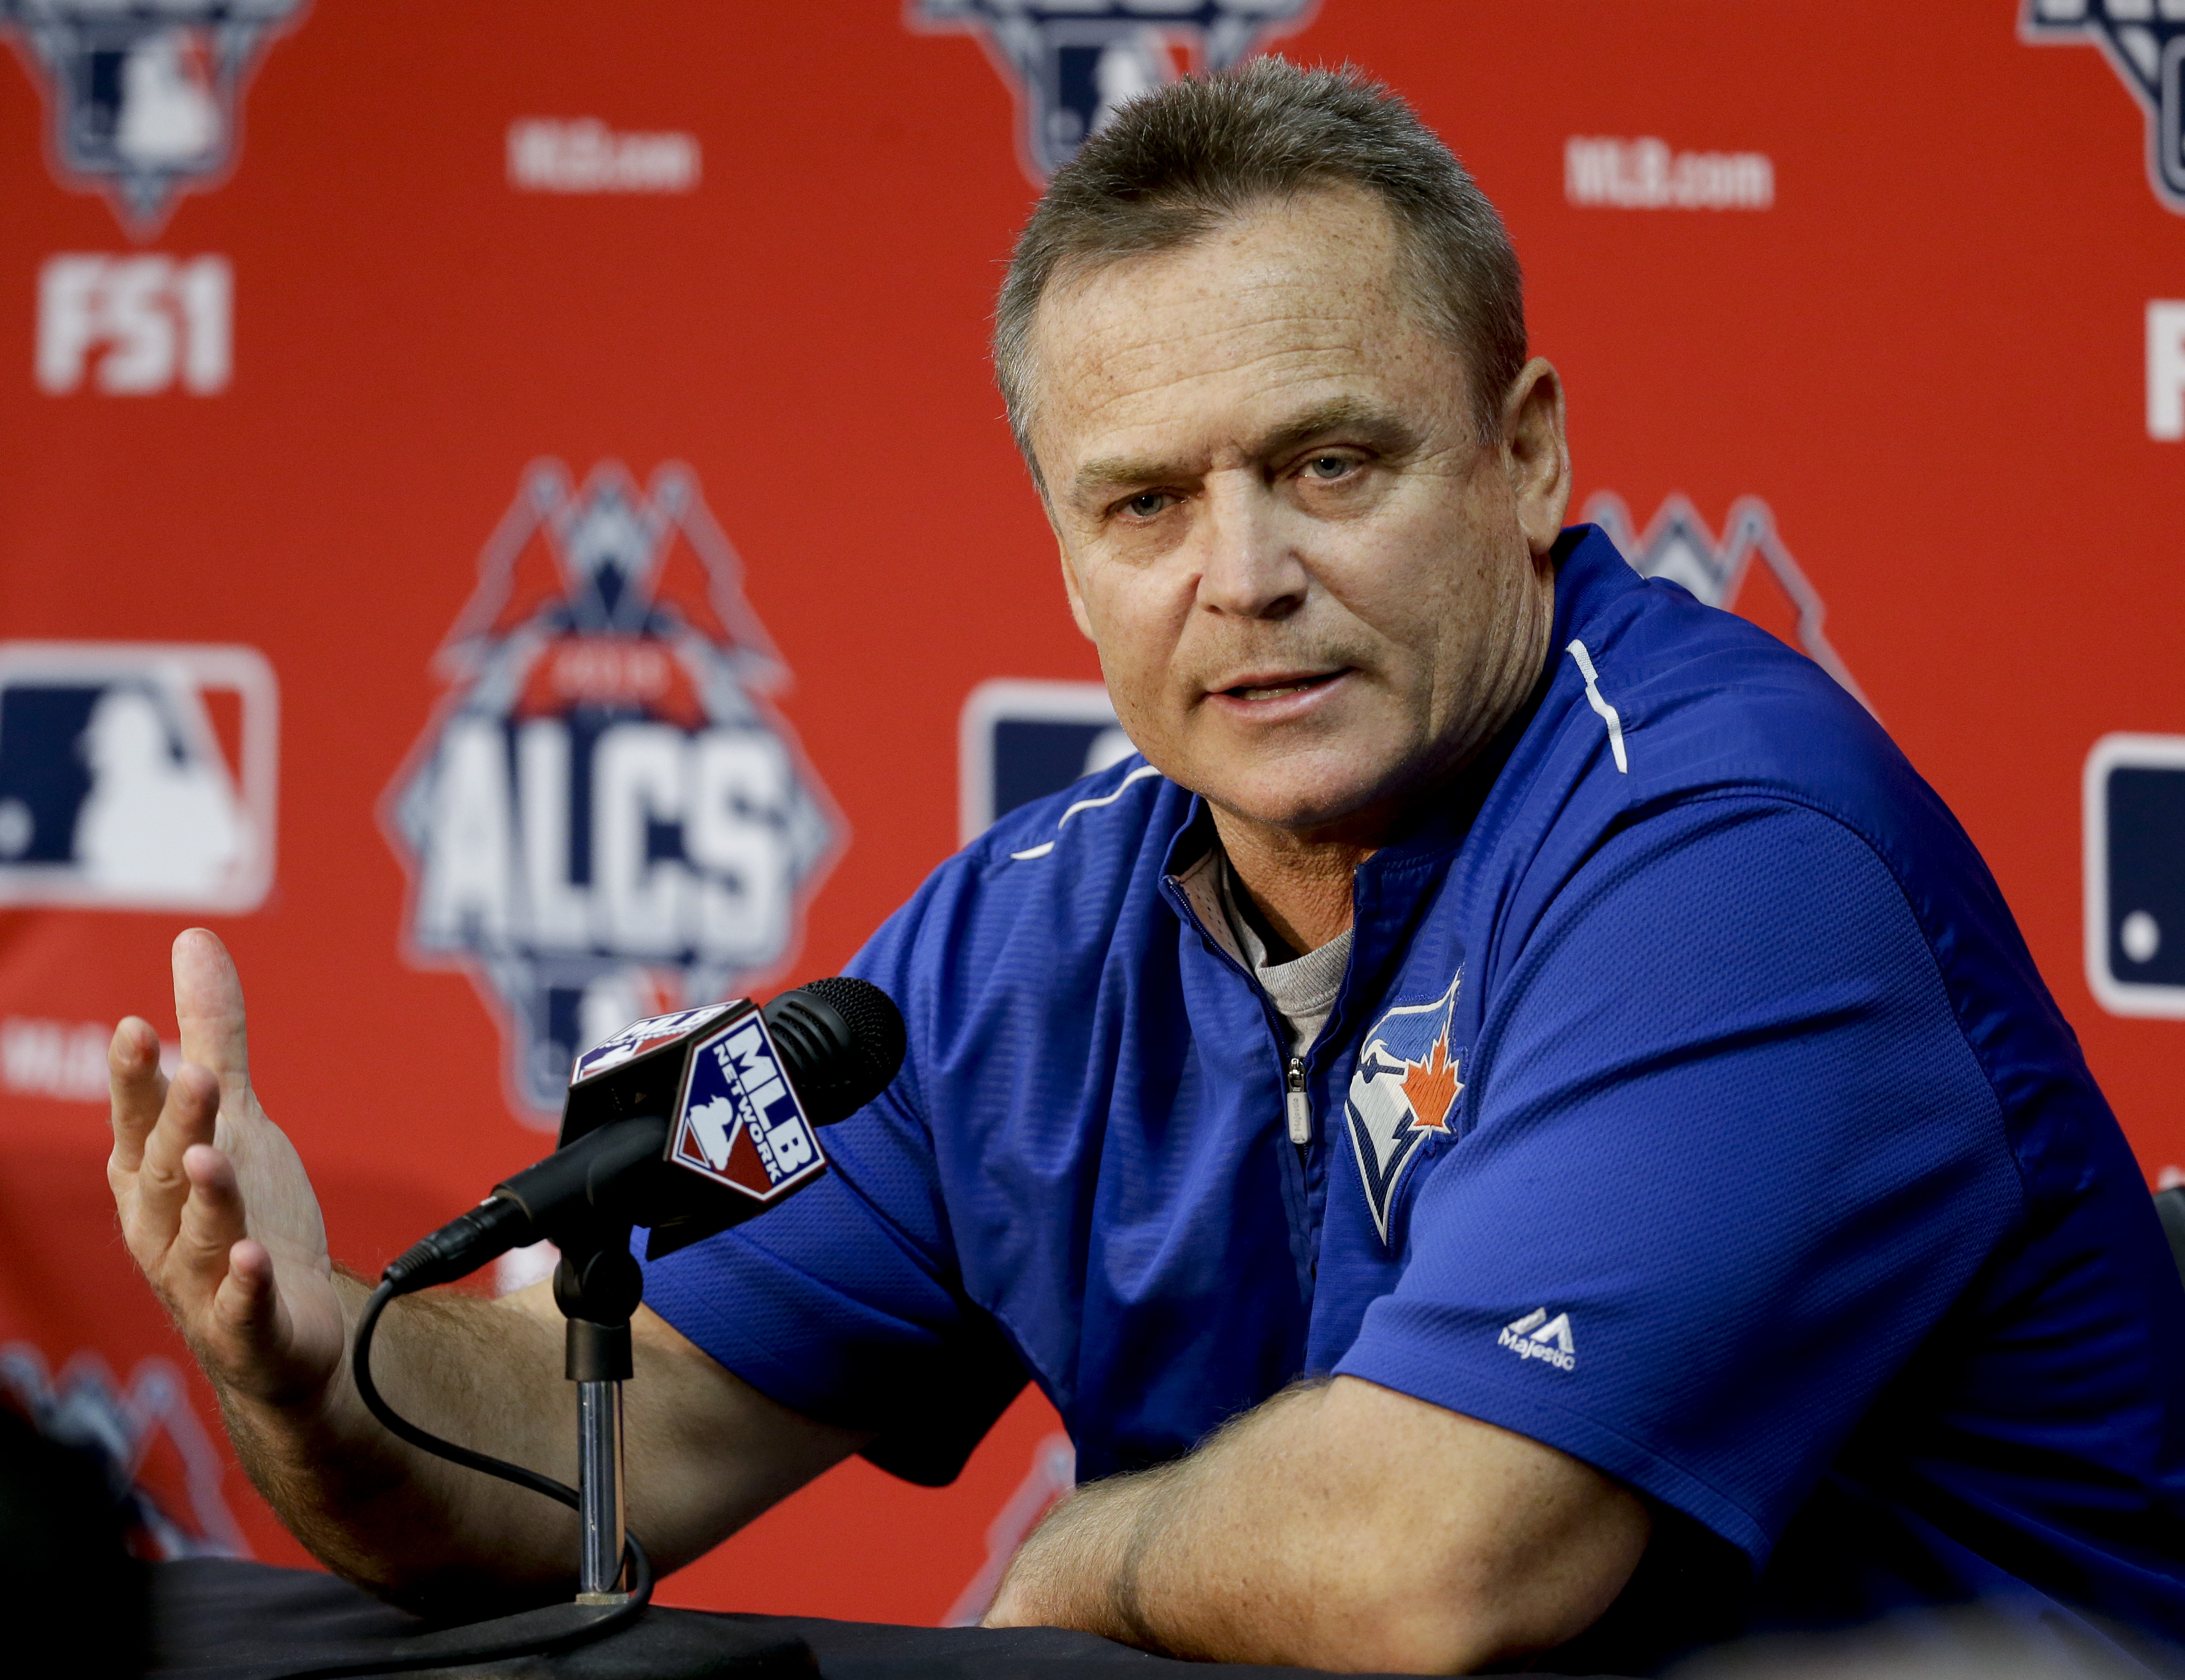 FILE - In this Oct. 23, 2015, file photo, Toronto Blue Jays manager John Gibbons talks during a news conference before Game 6 of baseball's American League Championship Series, in Kansas City, Mo. The Toronto Blue Jays finally made it back to the postseas